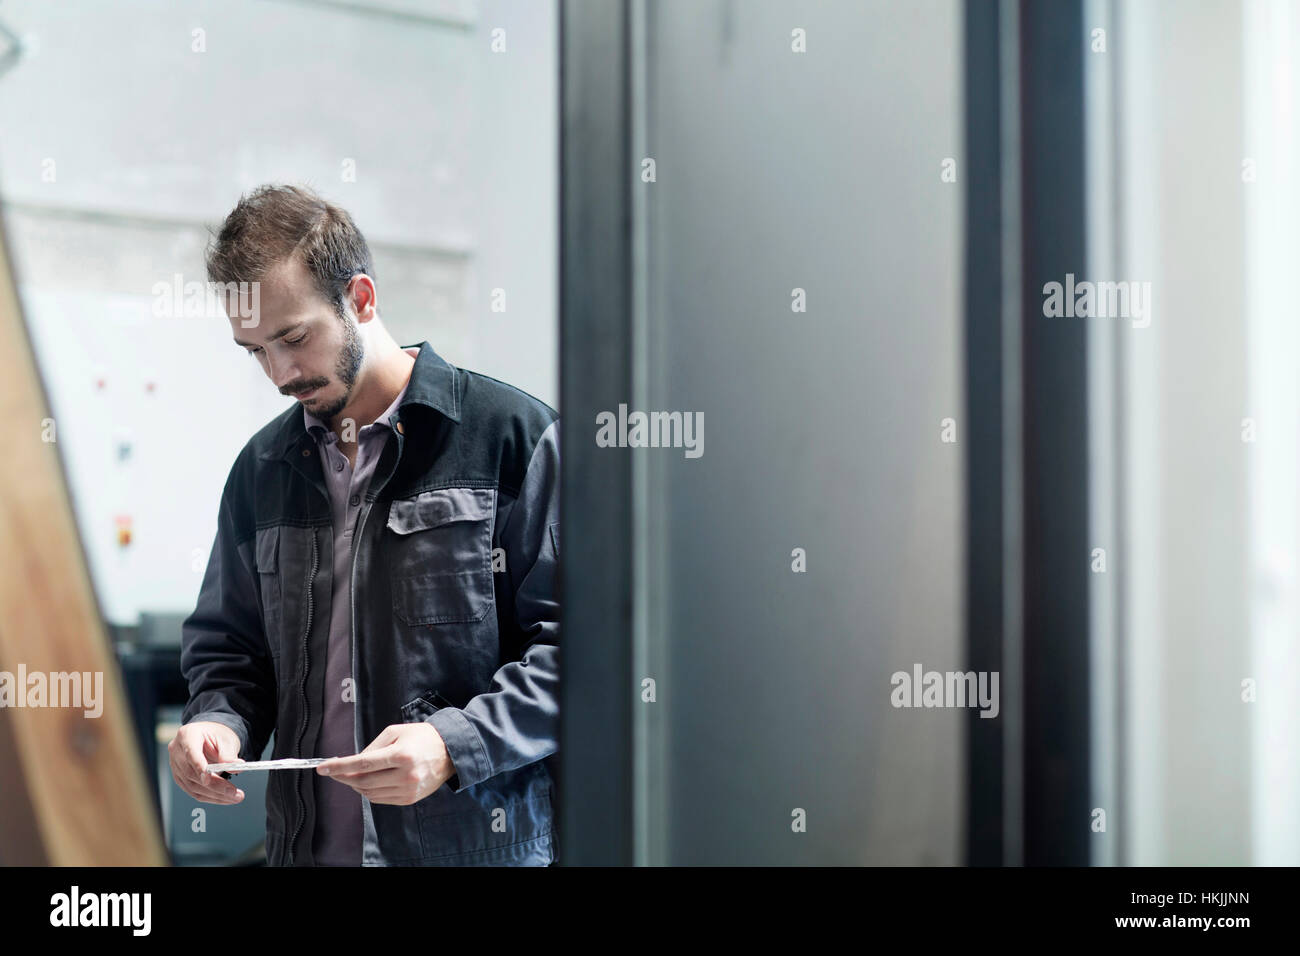 Young male engineer reading paper in technology space, Freiburg Im Breisgau, Baden-Württemberg, Germany Stock Photo